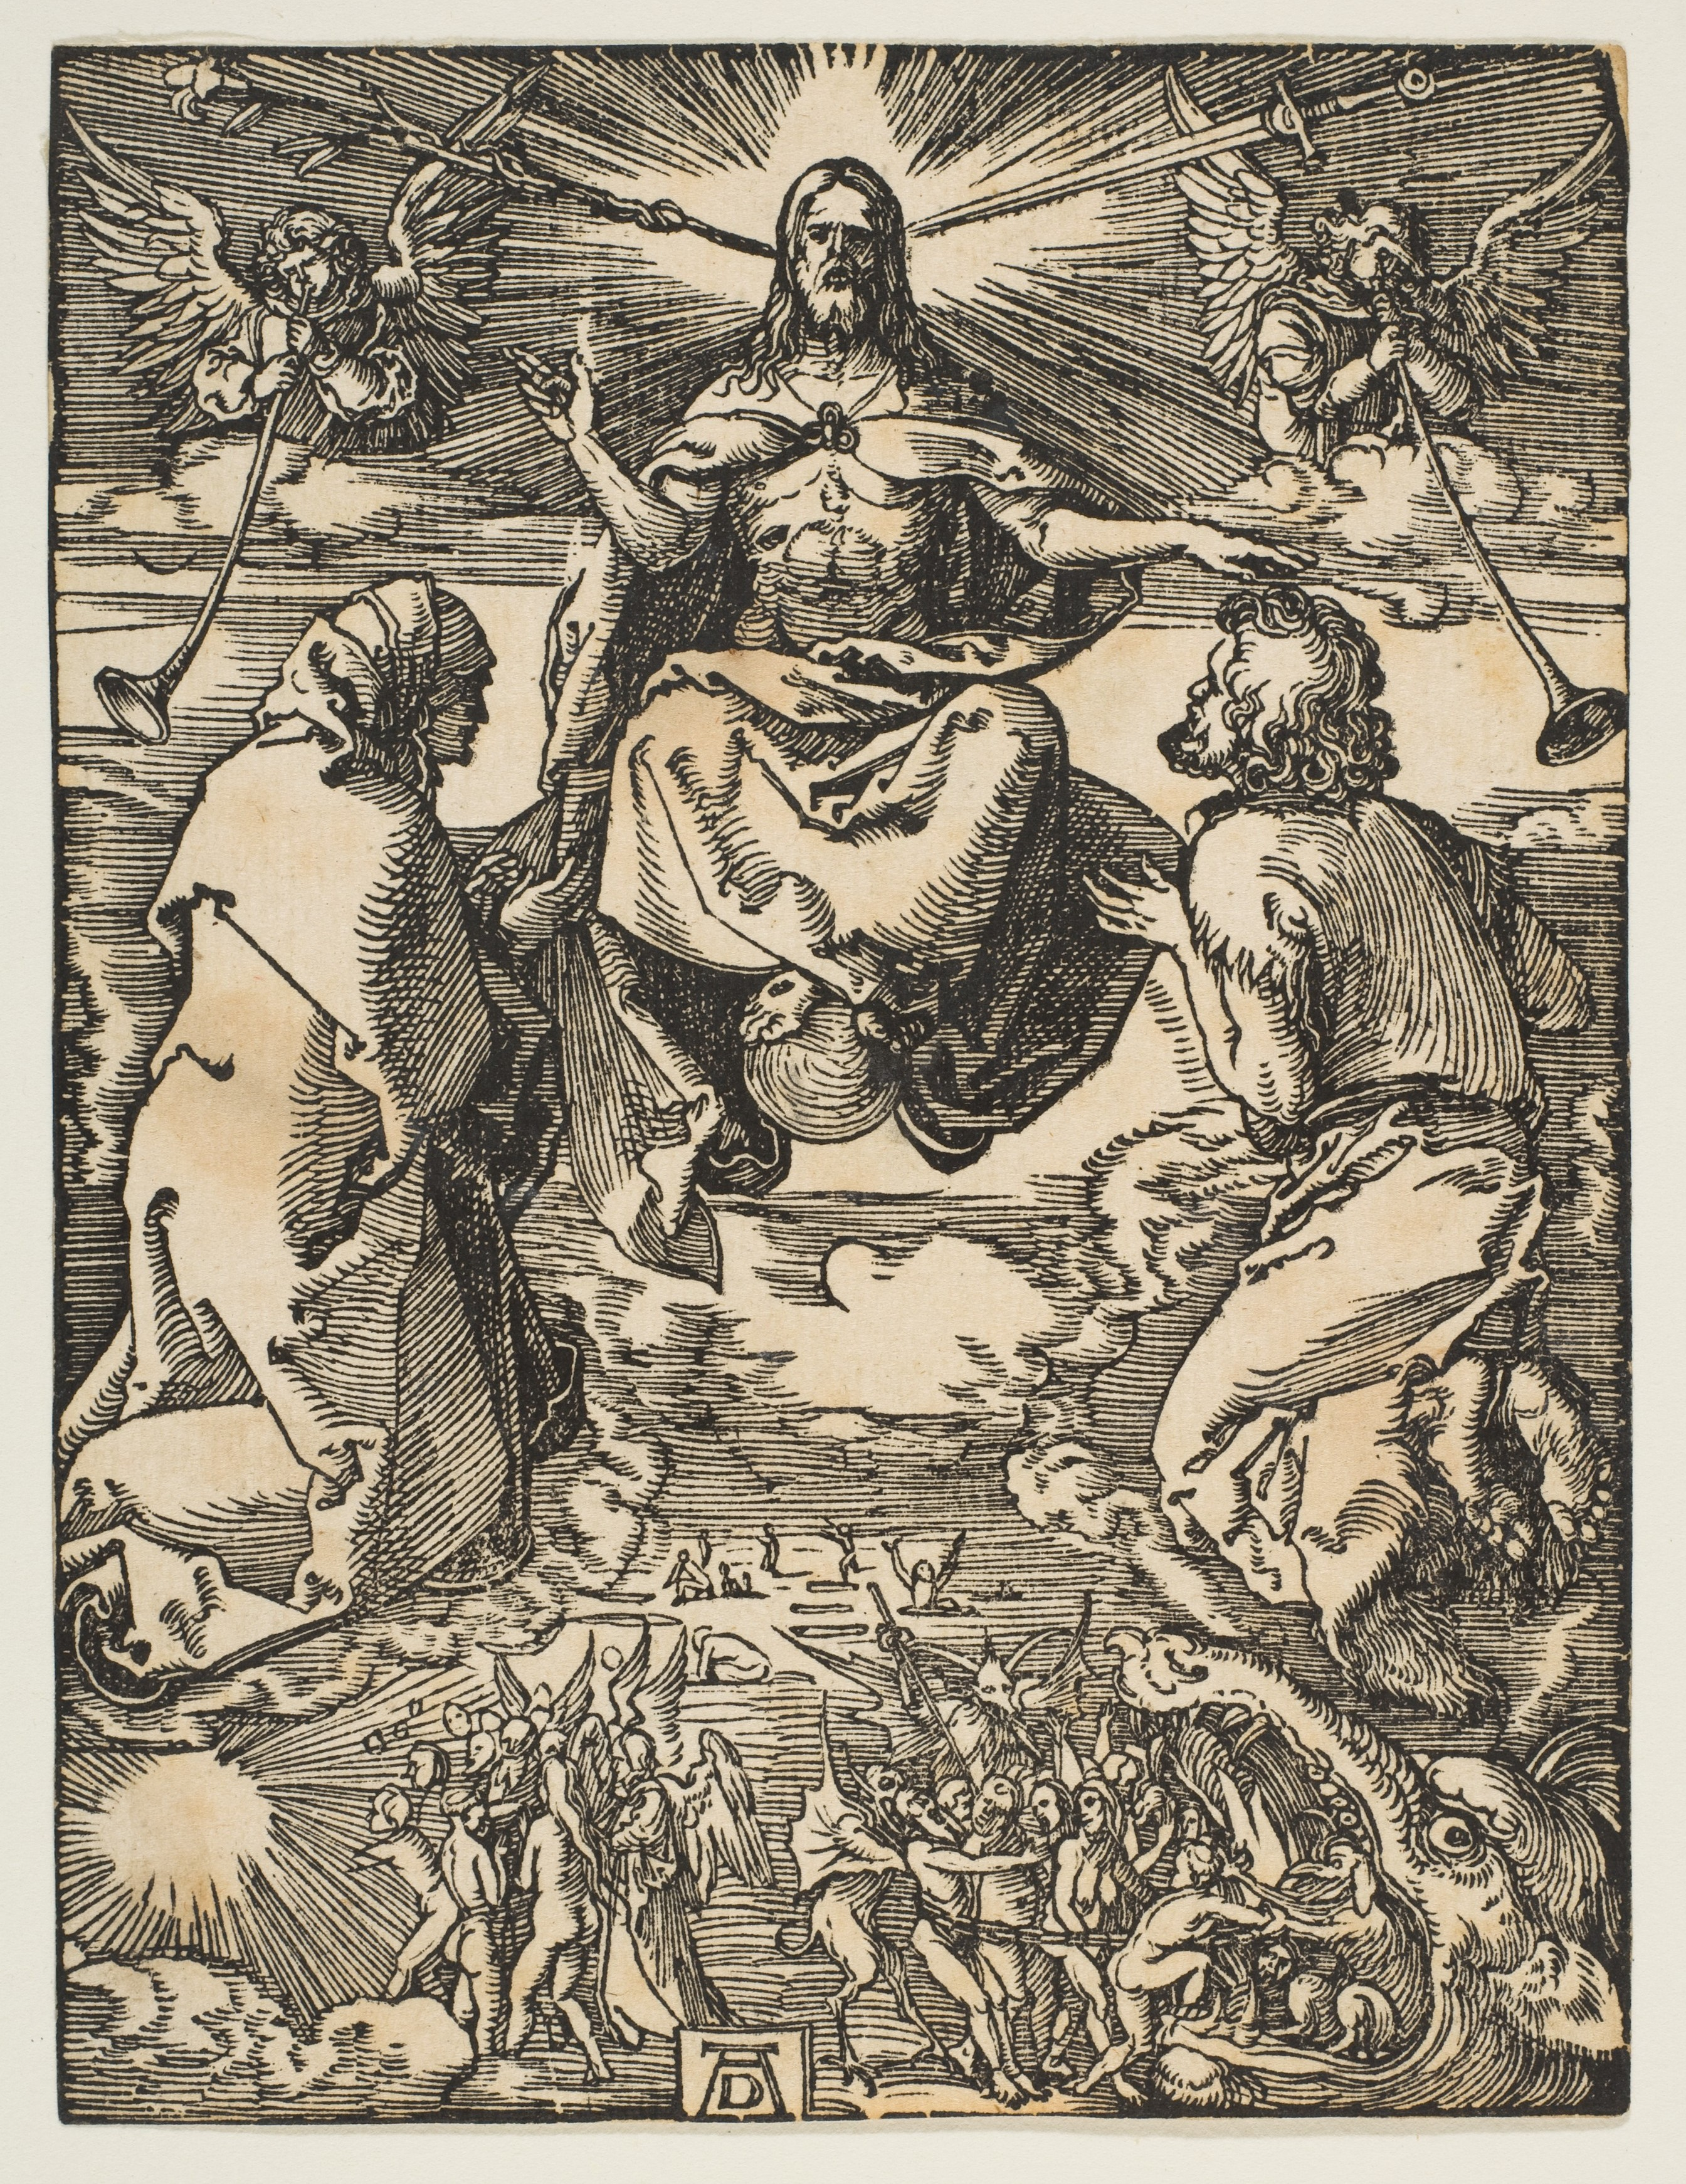 Albrecht Dürer | The Last Judgment, from The Small Passion | The Met